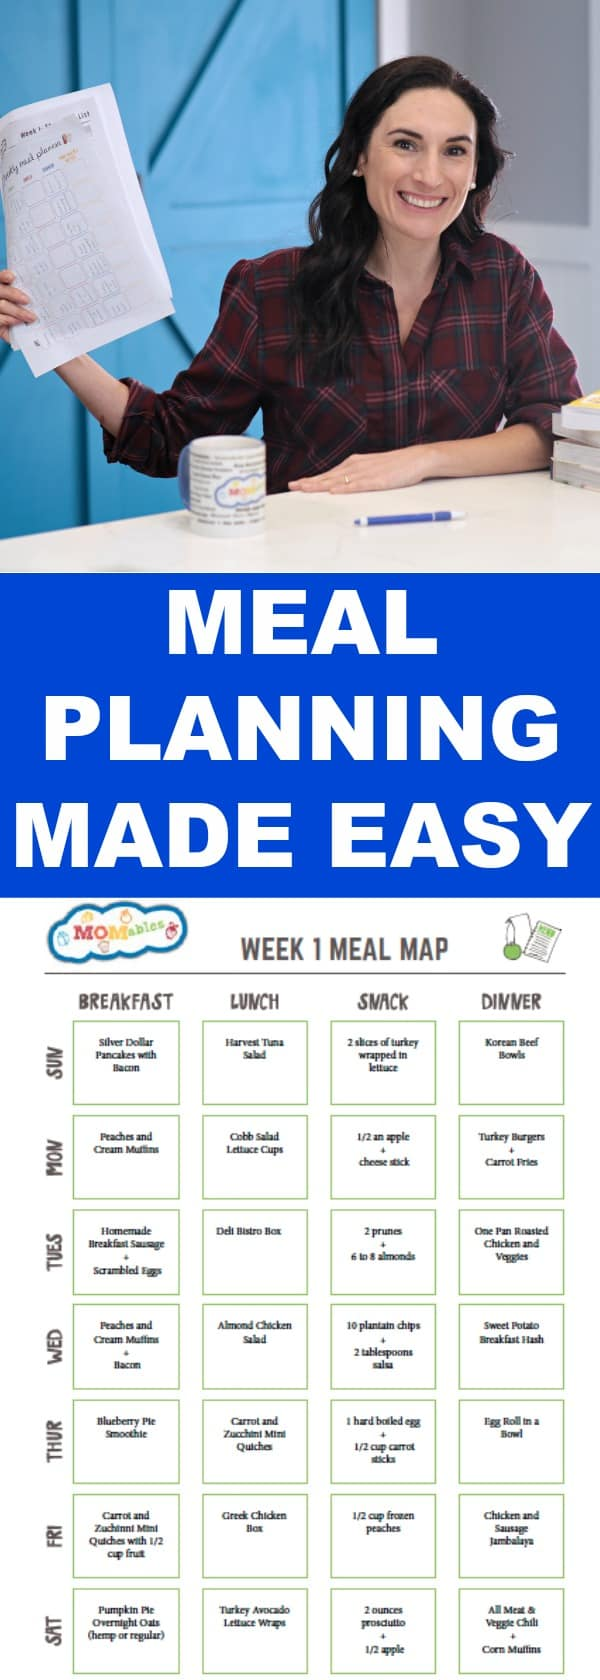 Stay on track with your KickStart, Sugar Detox, Real Food, Paleo, or Whole30 with these meal planning tips.